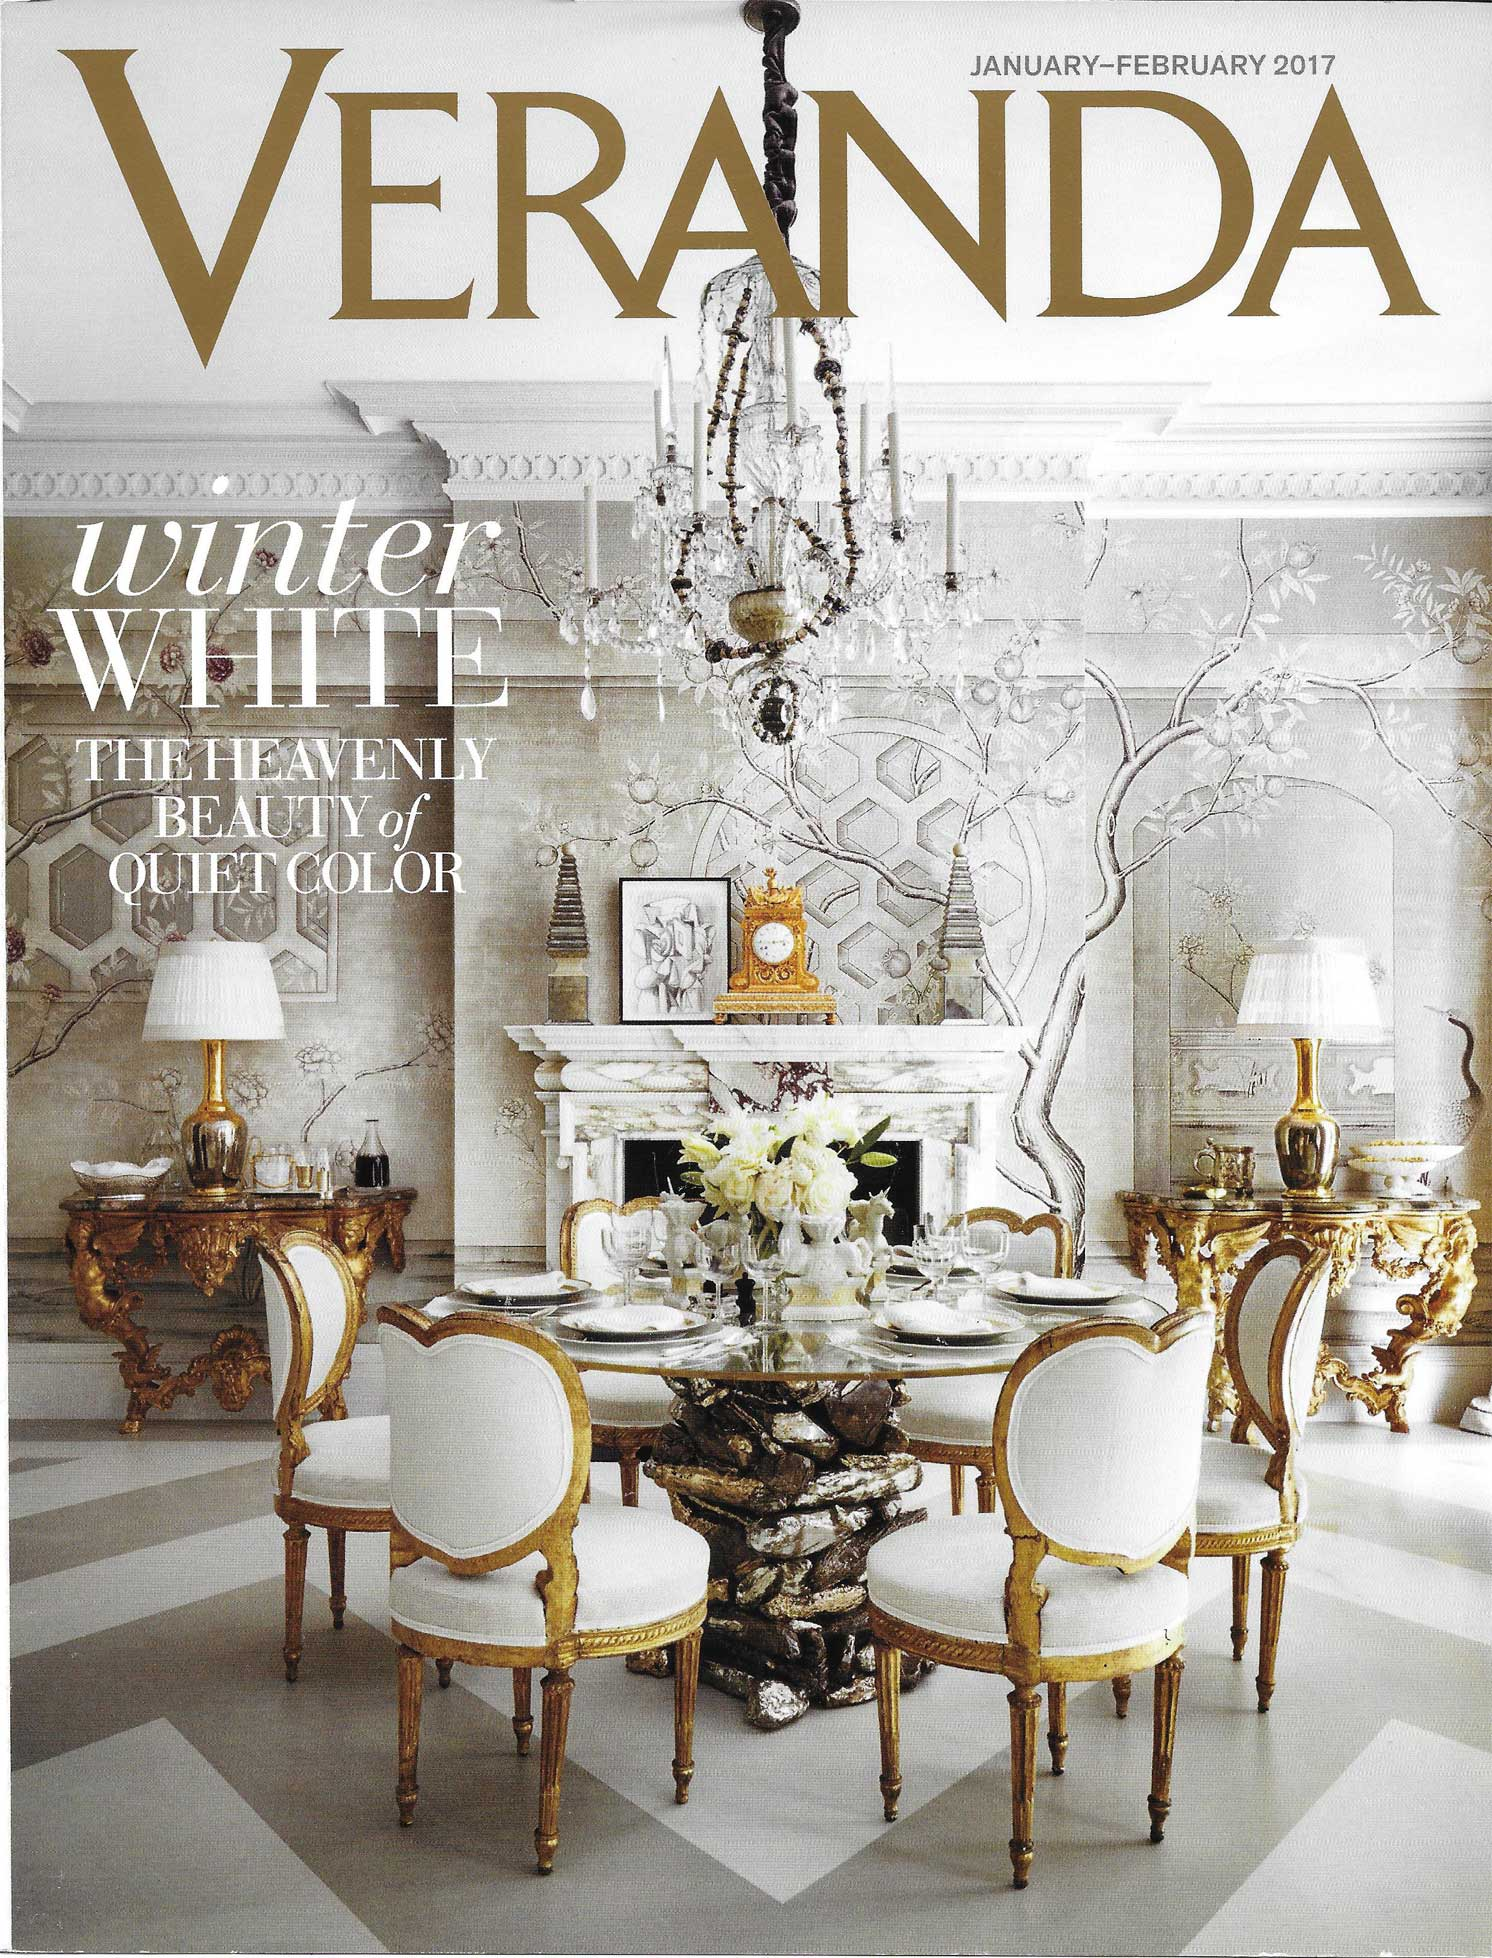 Veranda, Jan/Feb 2017, 1 of 2